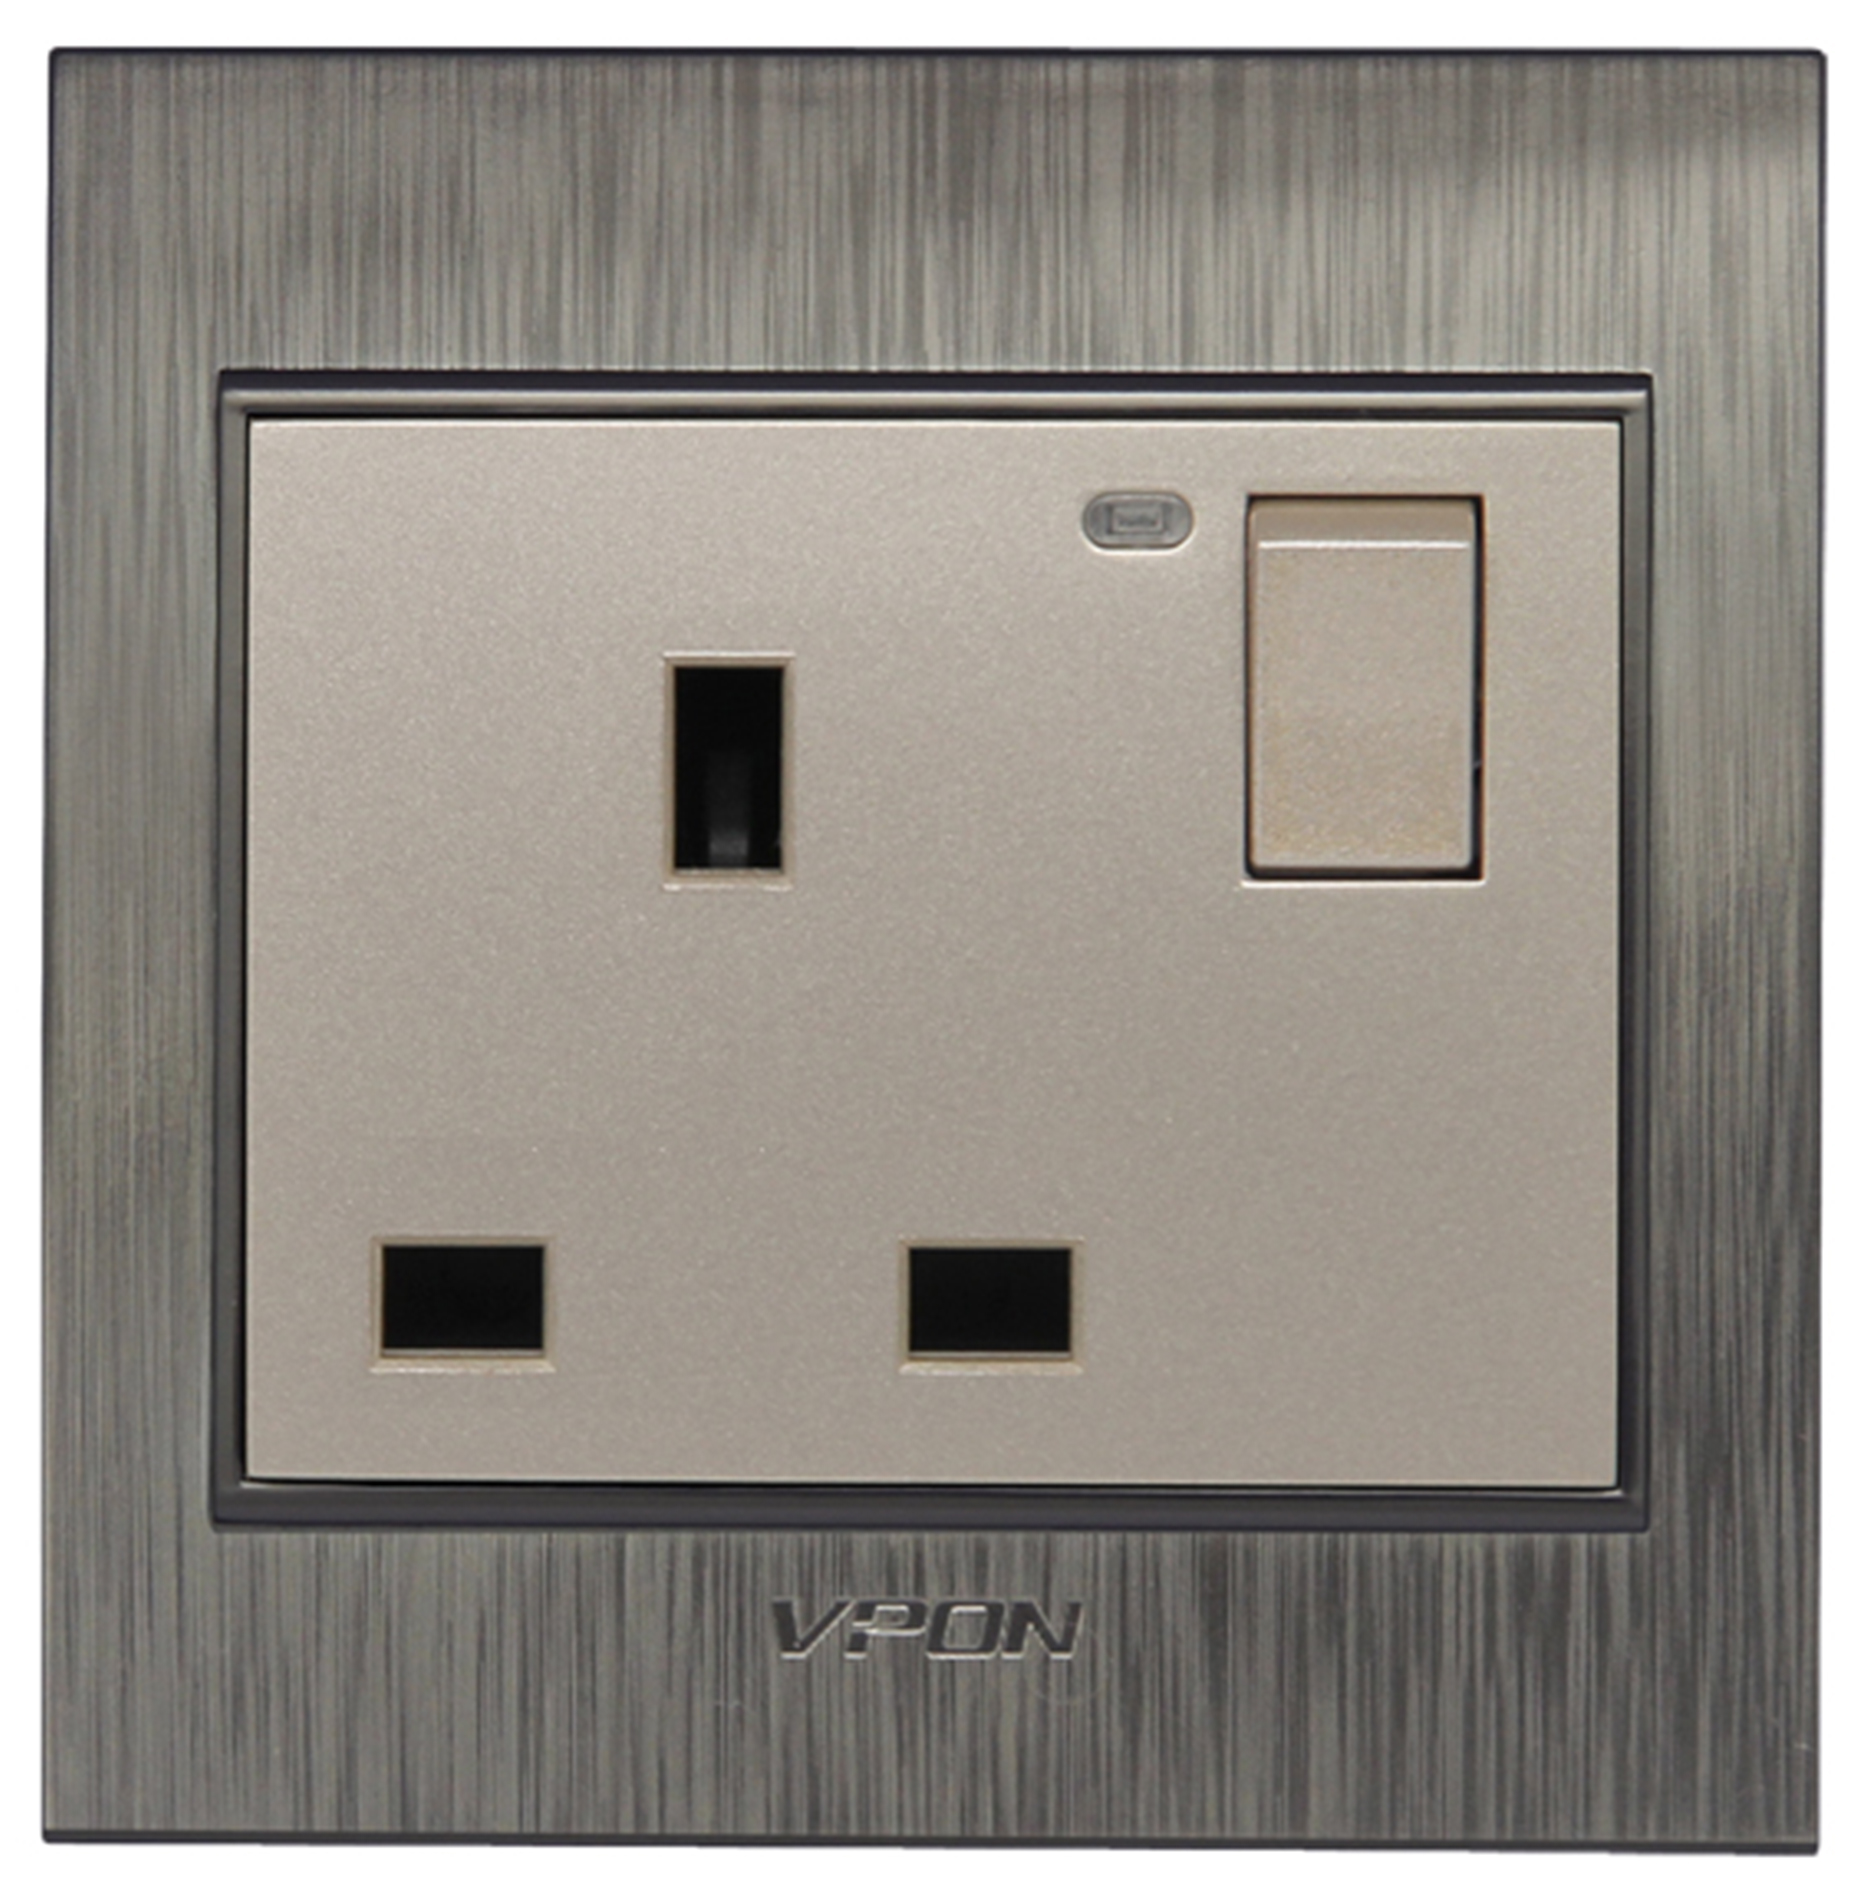 13A British Wall Switch Socket with Led